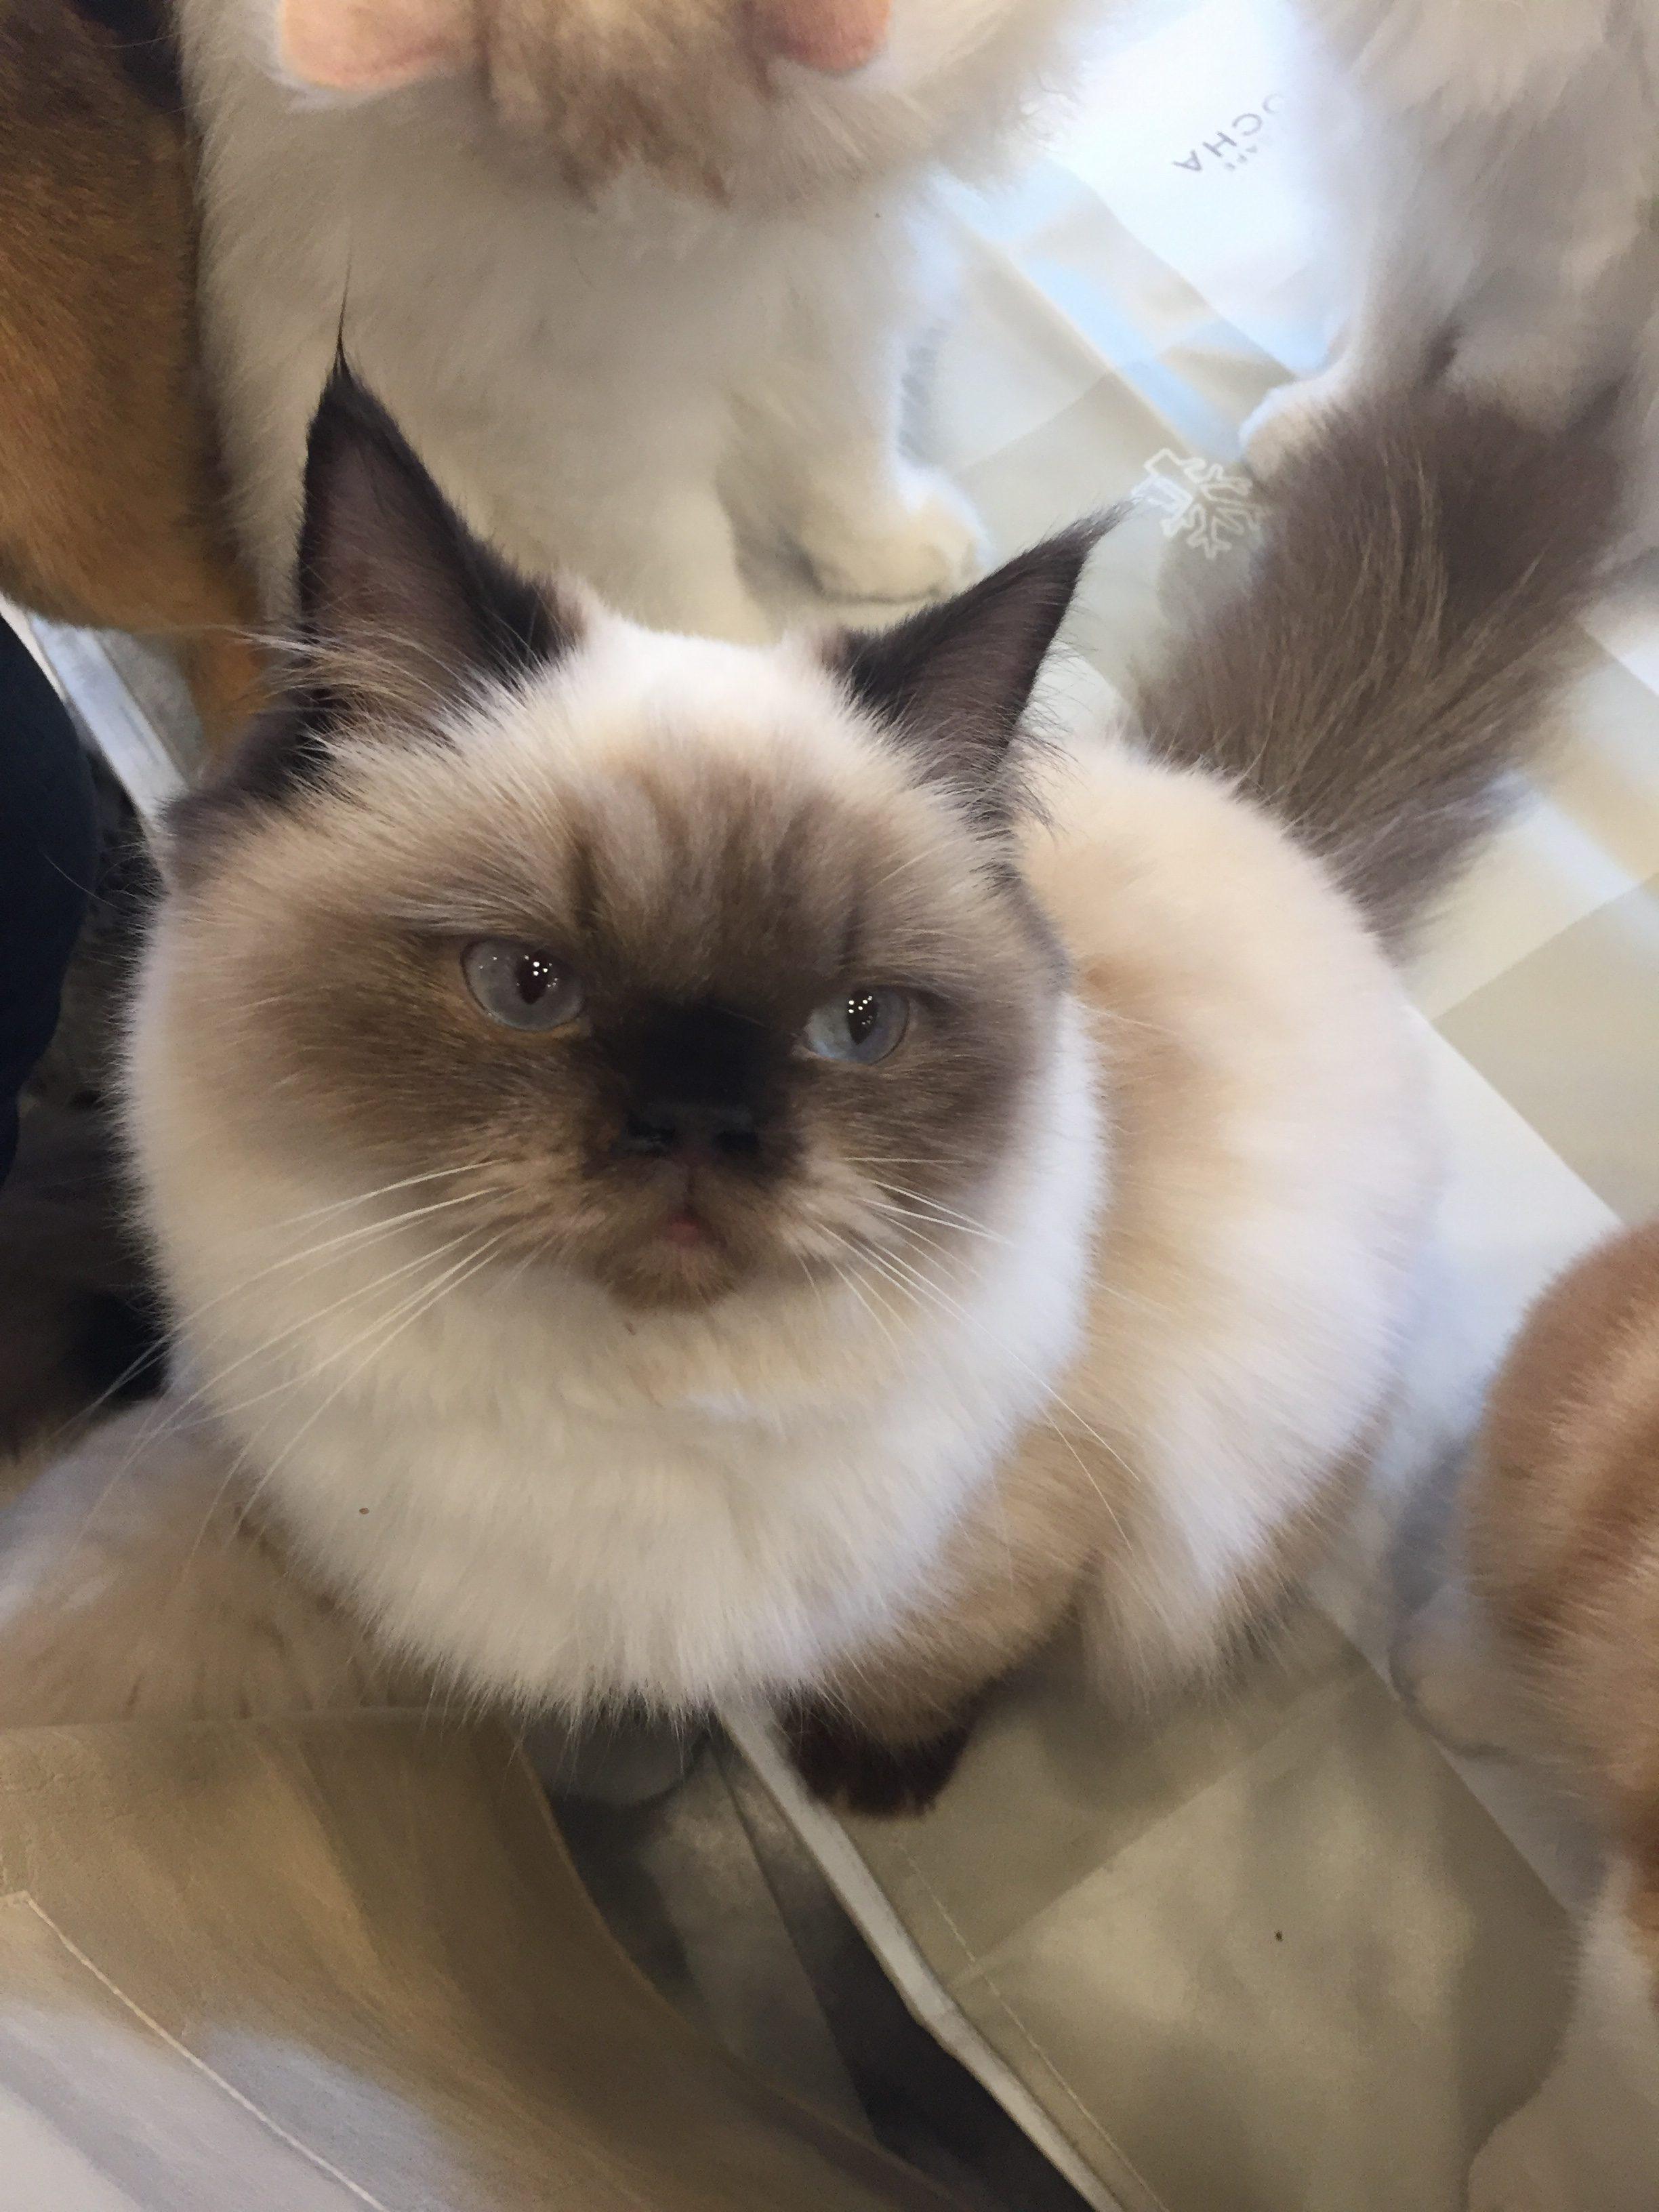 a cat looking into the camera